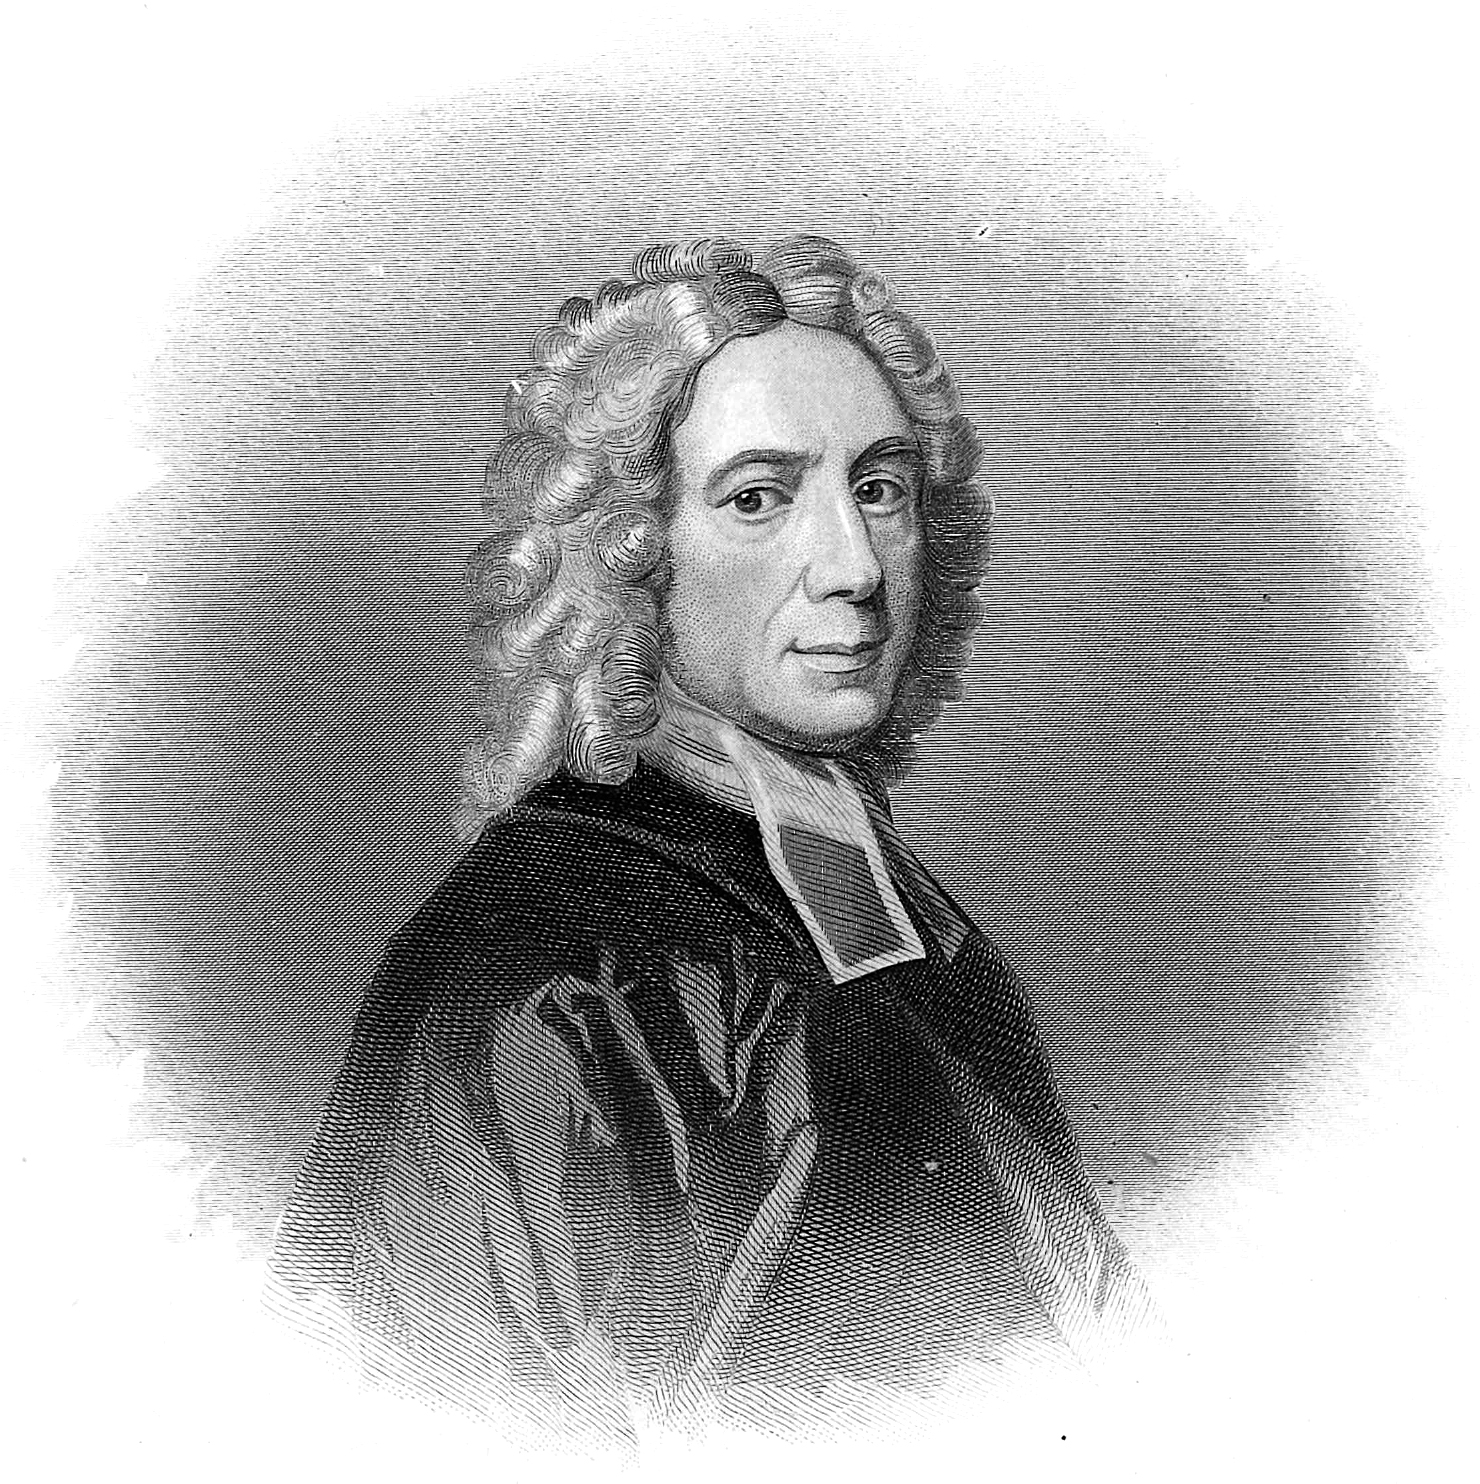 Isaac Watts , from Edwin Long,  Illustrated History of Hymns and Their Authors  (ca. 1882), based on the portrait by Godfrey Kneller, National Portrait Gallery.